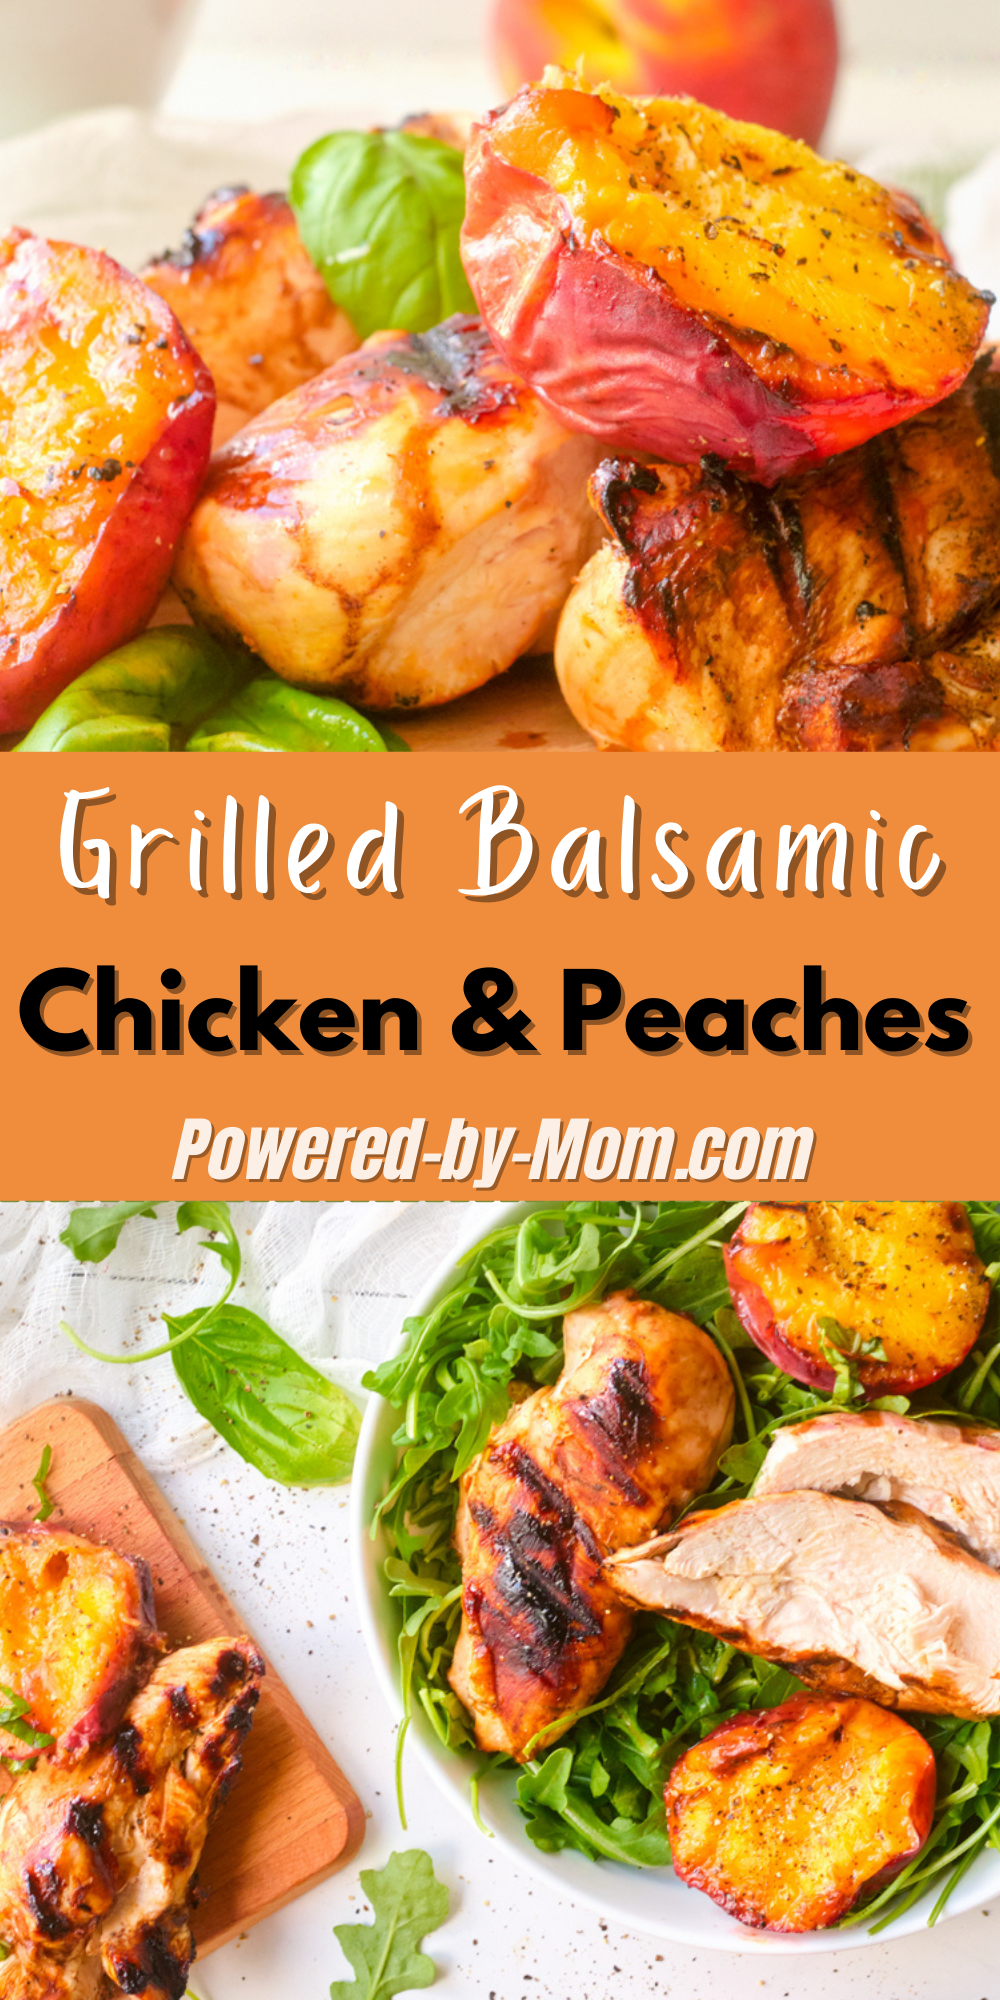 No oven needed. Make this grilled balsamic chicken and peaches on the BBQ and enjoy the leftovers cold on a salad or all by itself.